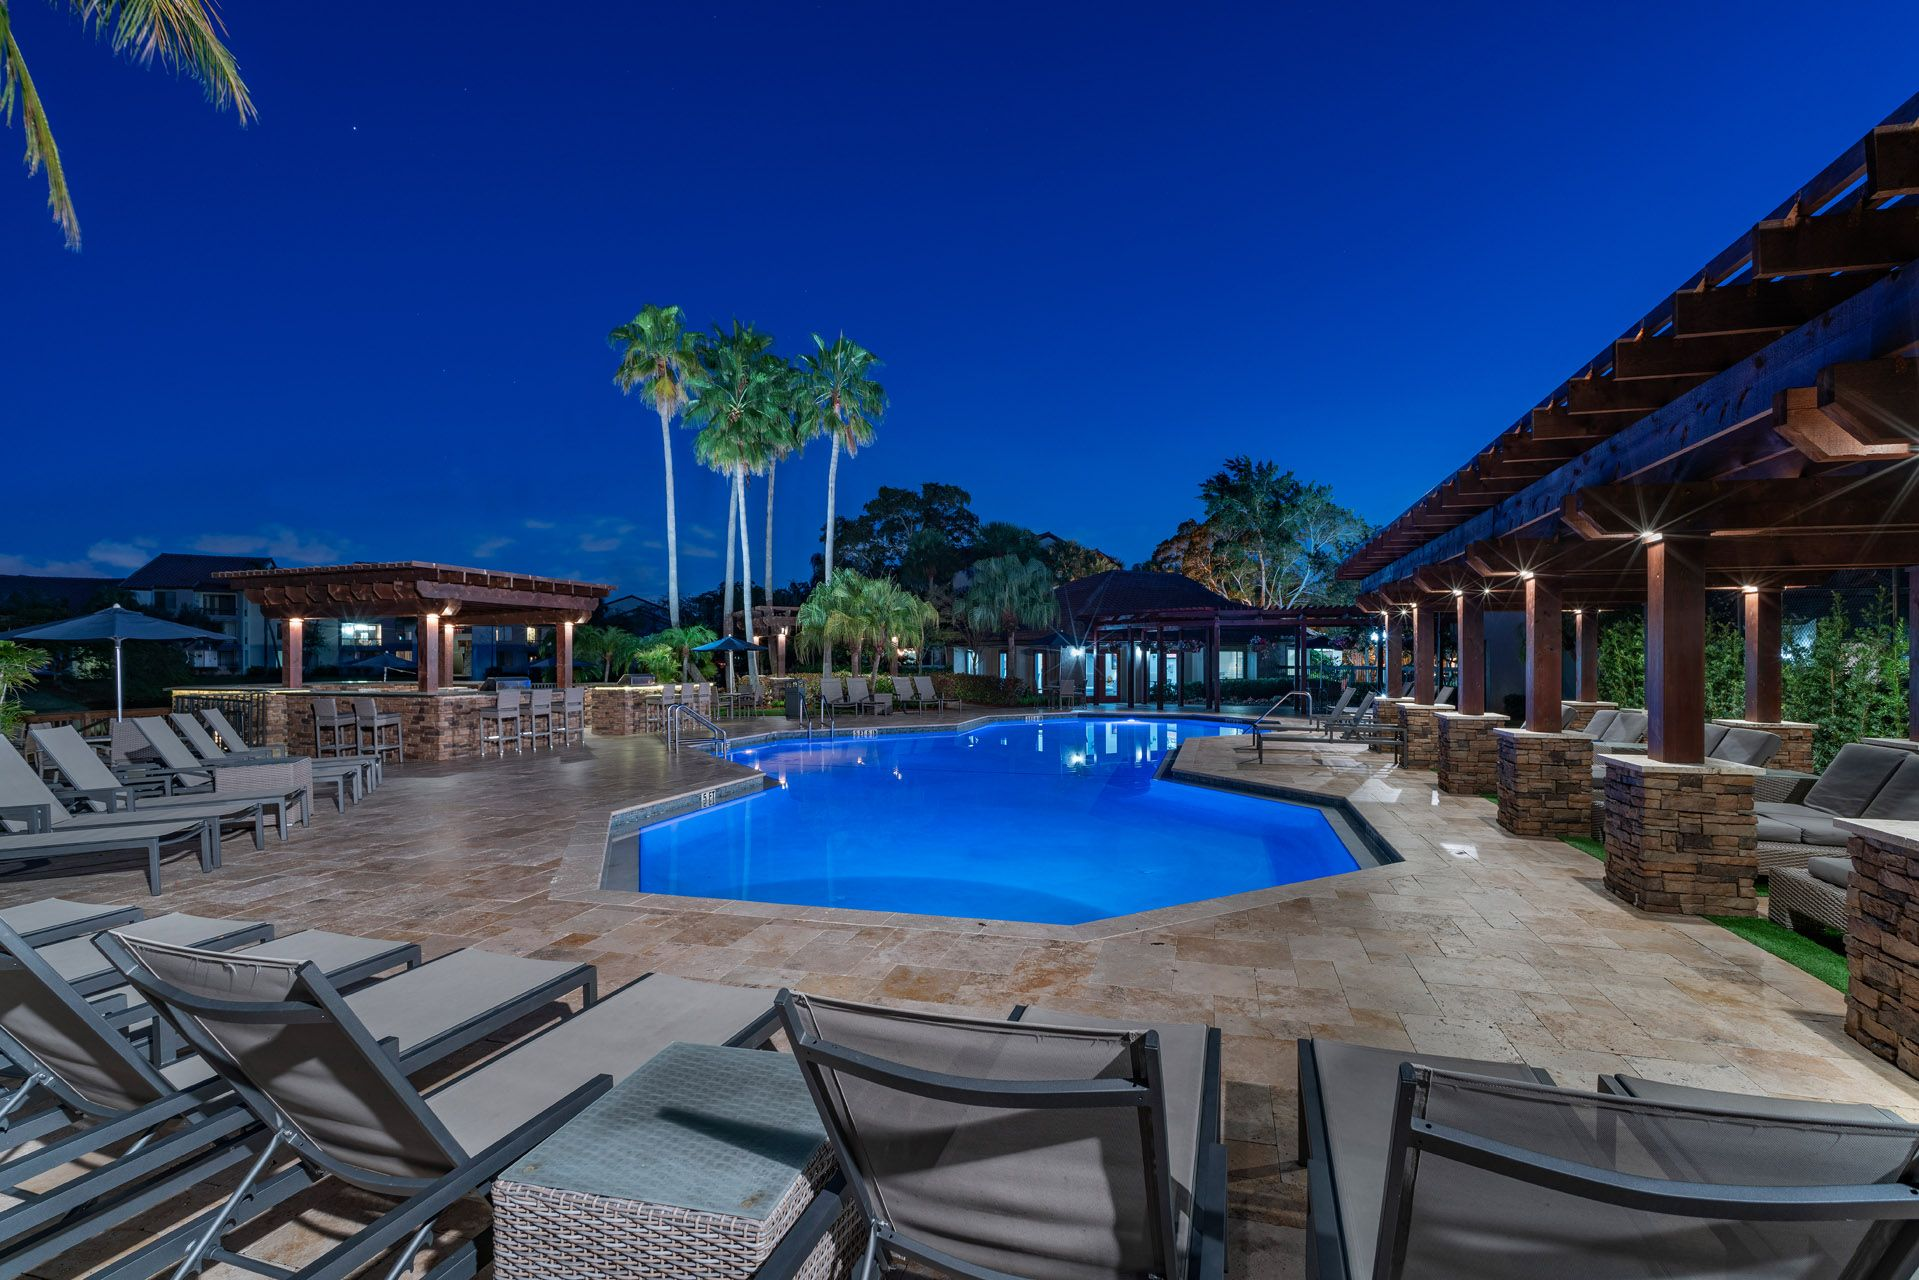 Swimming pool at night with seating